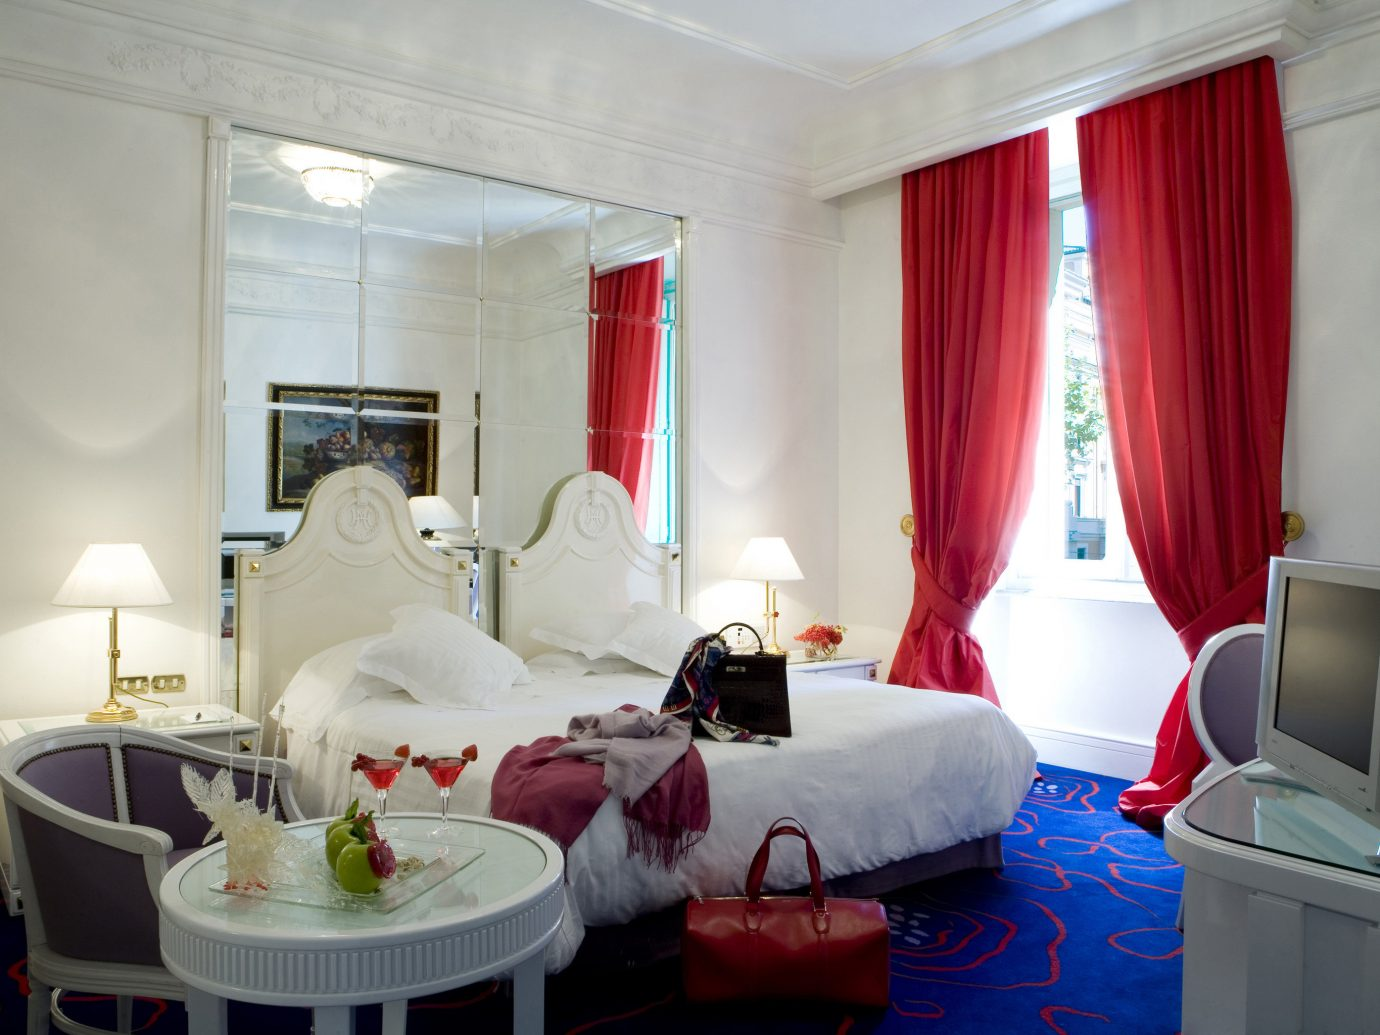 Boutique Hotels Italy Luxury Travel Romantic Hotels Rome indoor wall room floor Living property curtain Suite interior design red furniture Bedroom living room estate apartment cottage decorated flat cluttered several